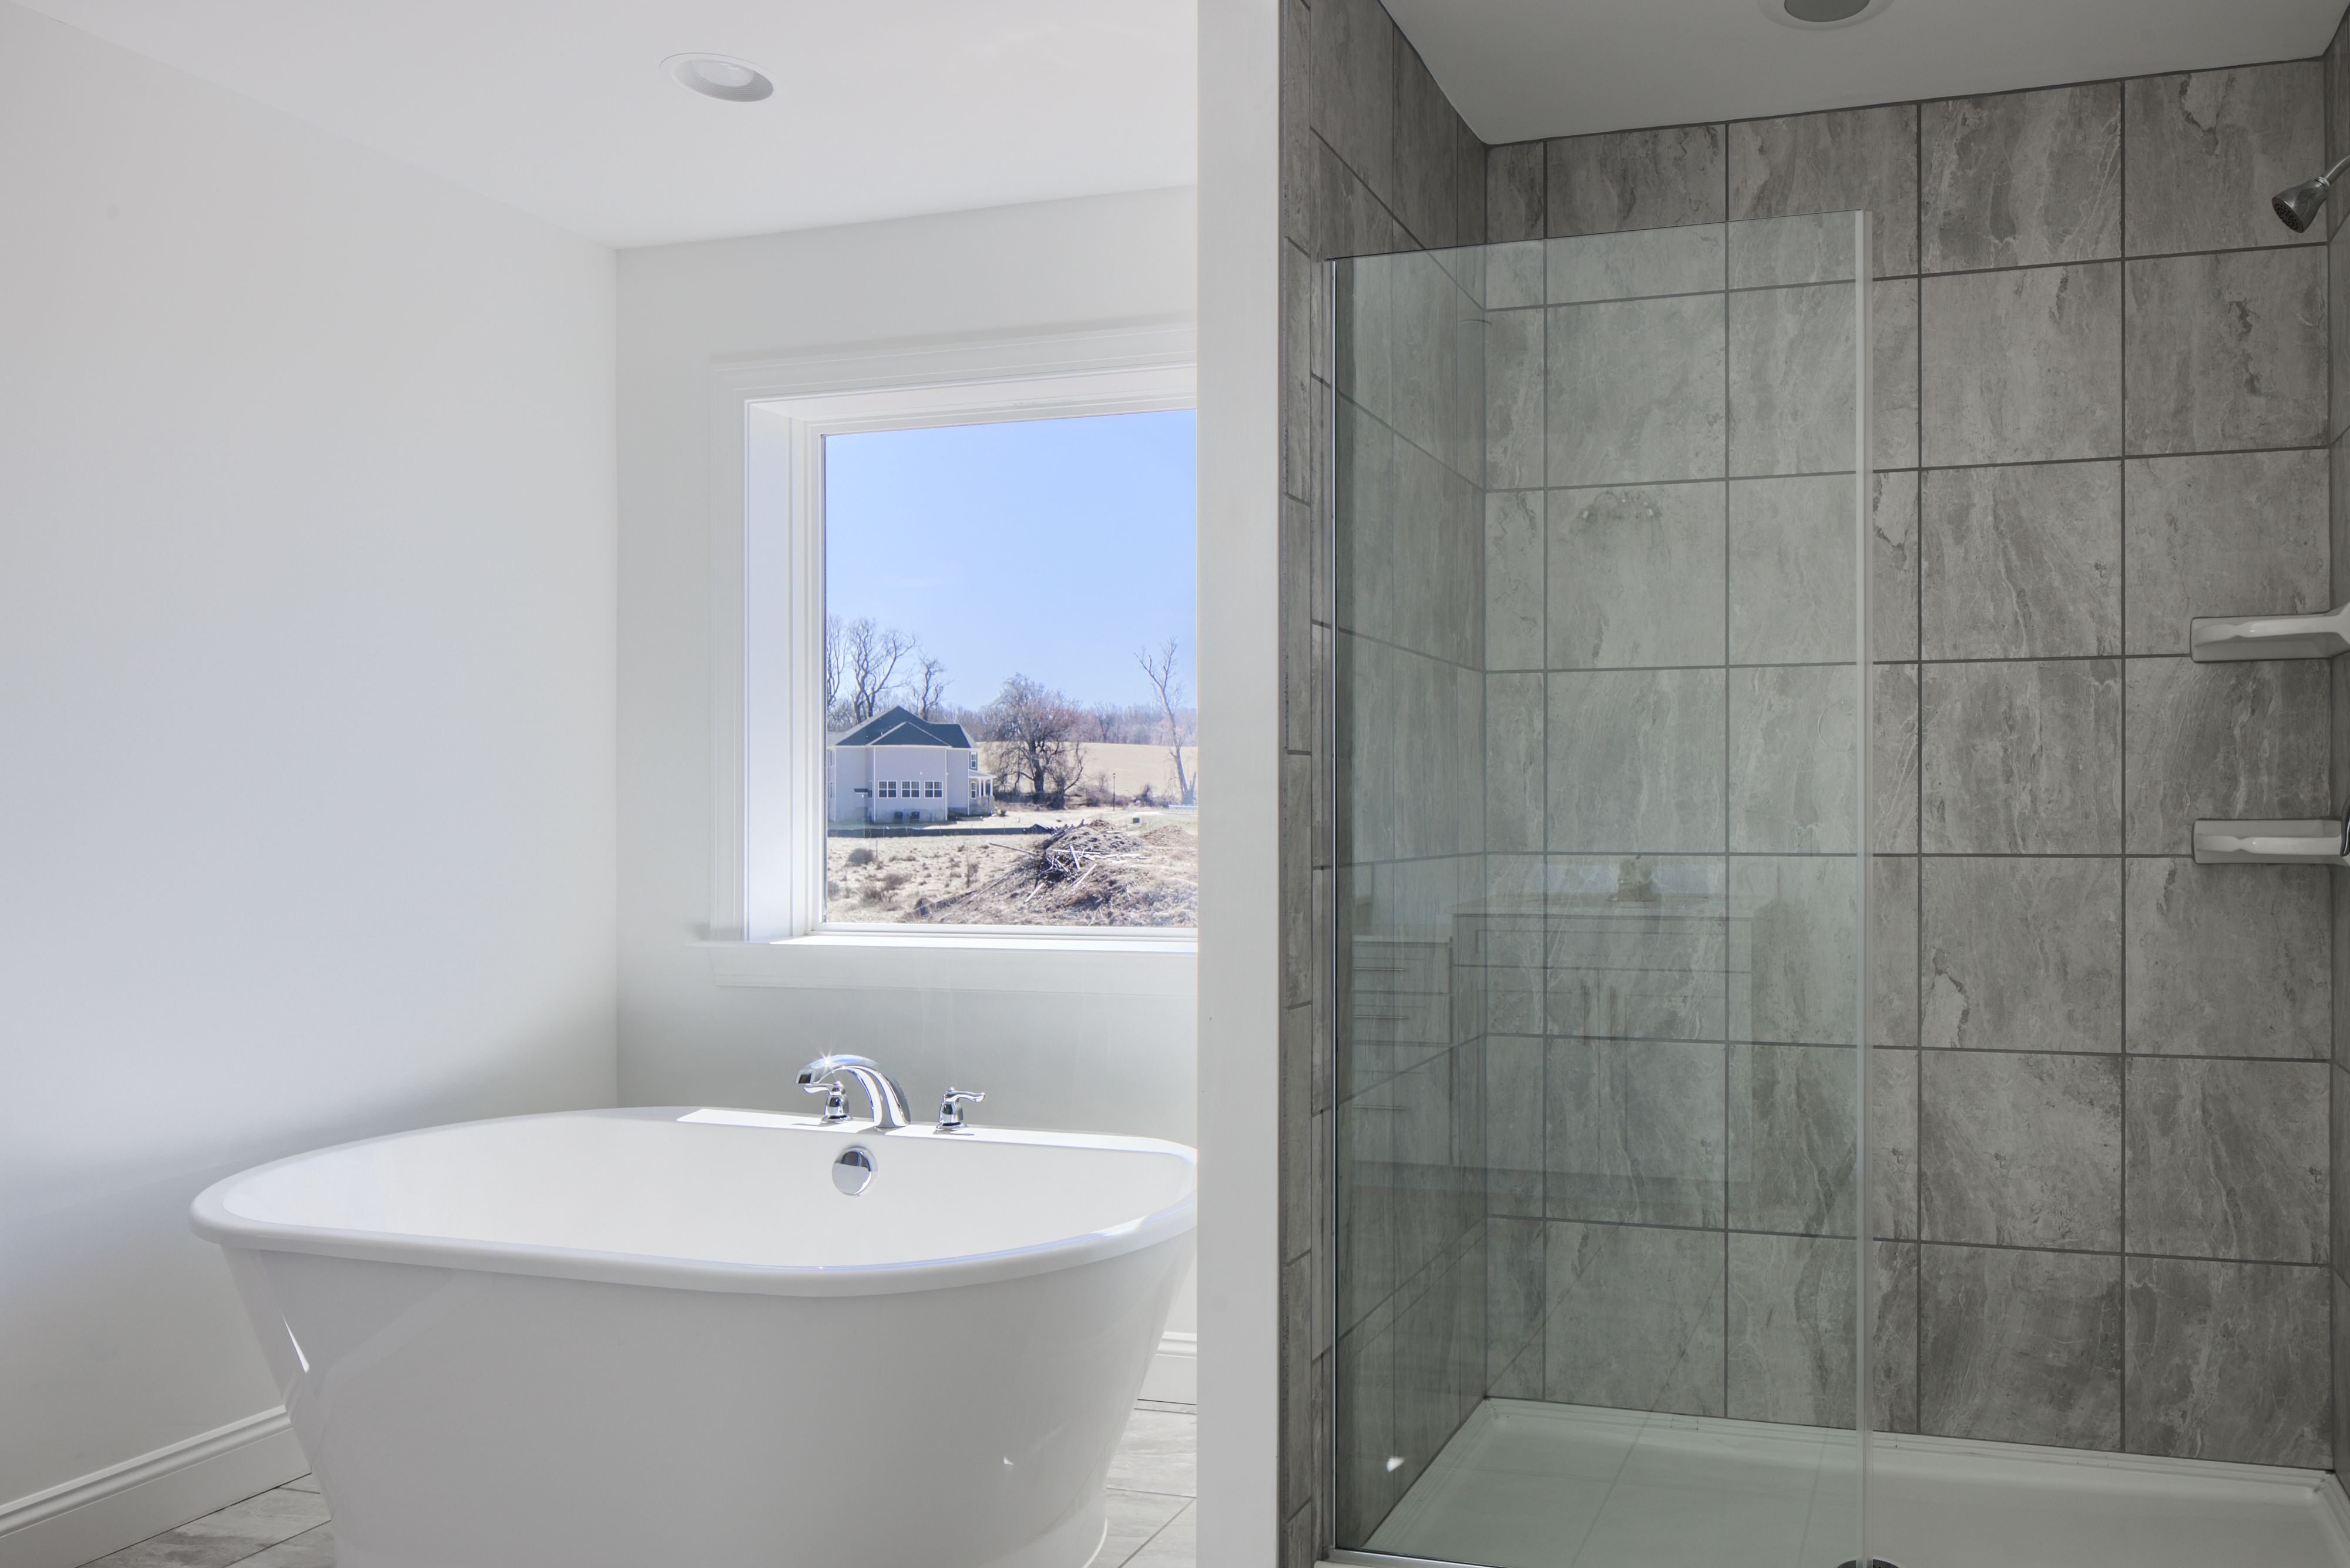 Bathroom featured in the Hawthorne Manor By Keystone Custom Homes in Baltimore, MD